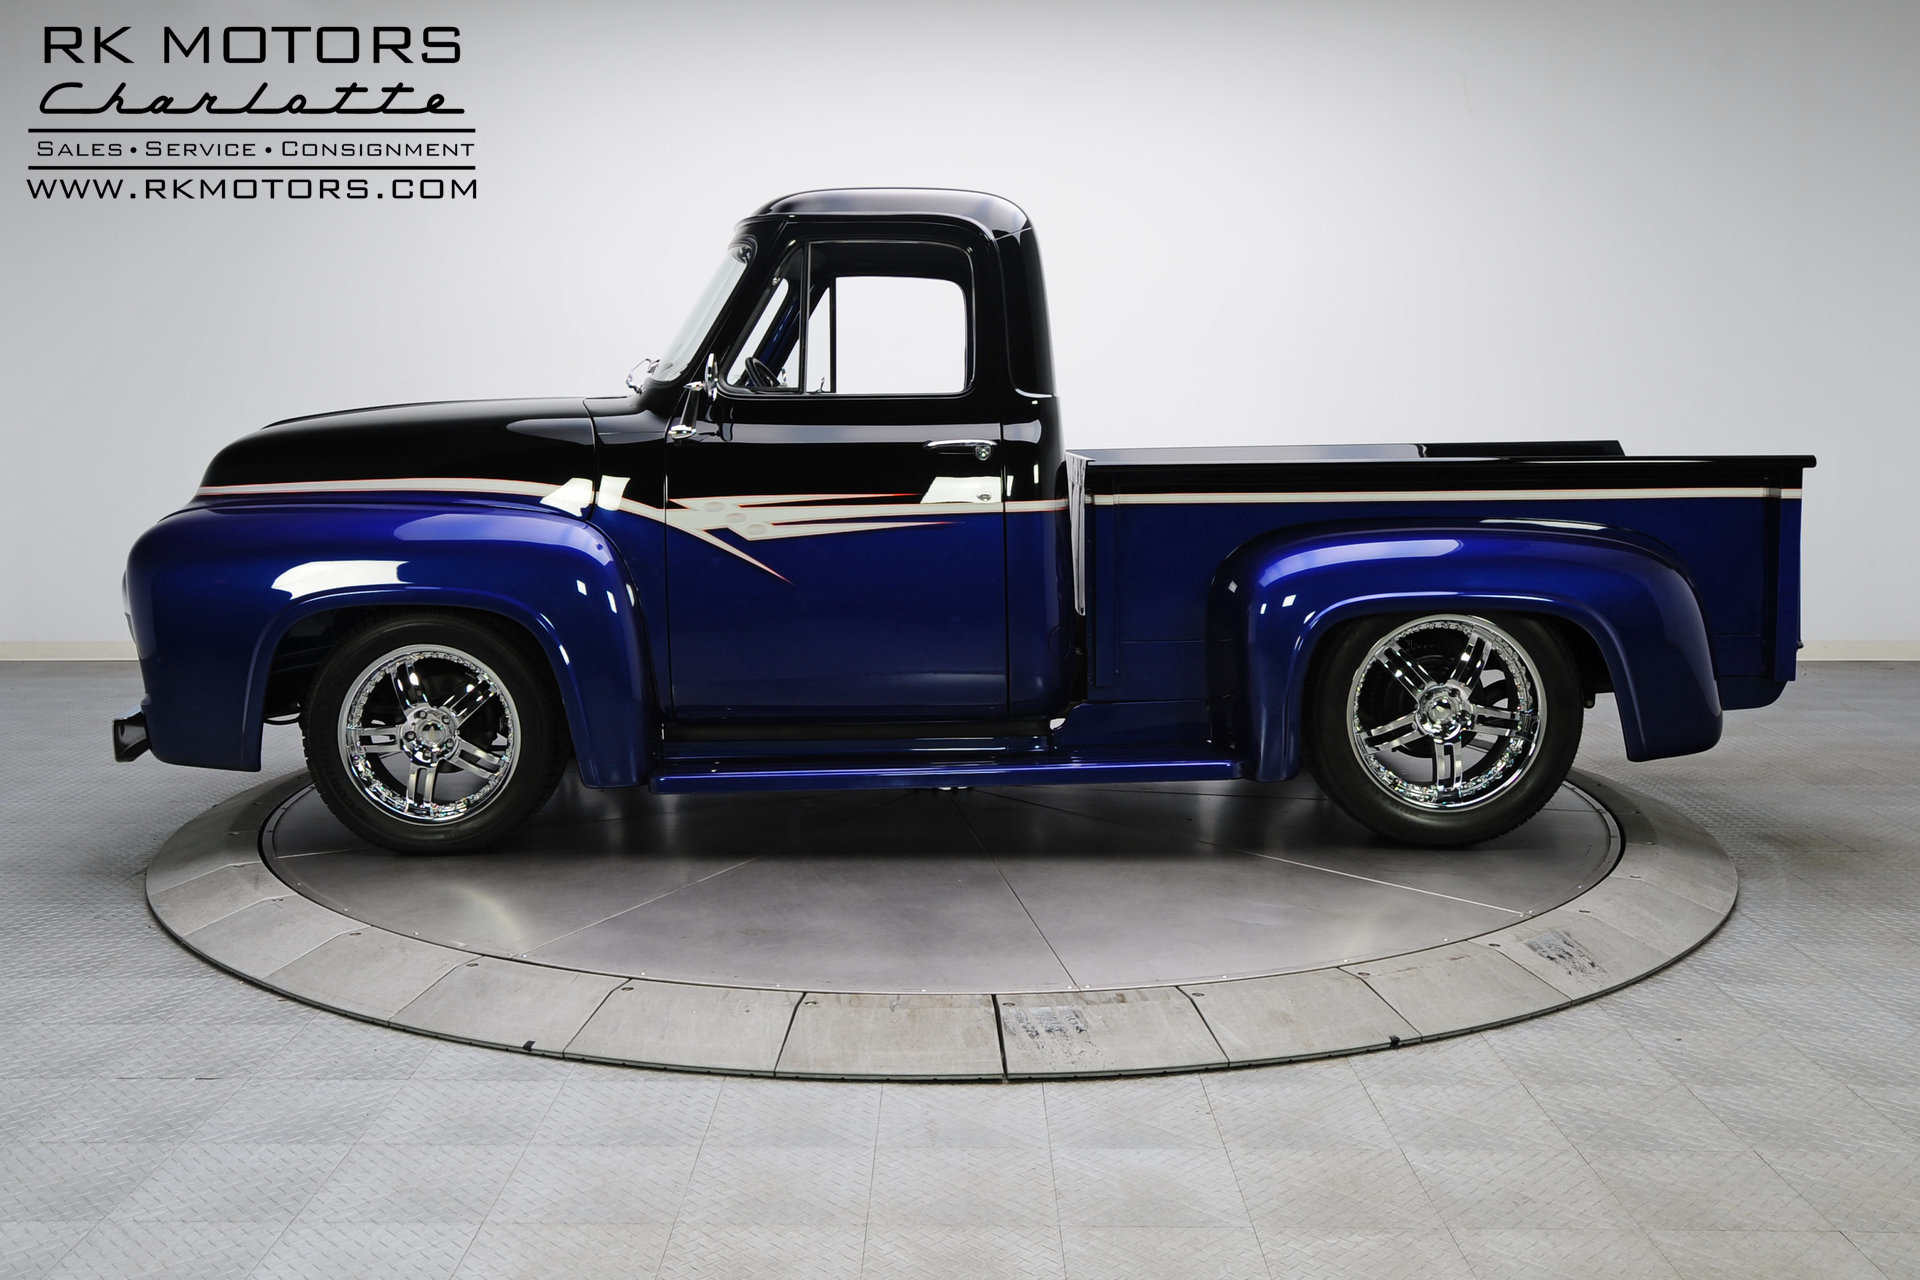 132949 1955 Ford F100 Rk Motors Classic Cars For Sale Pick Up